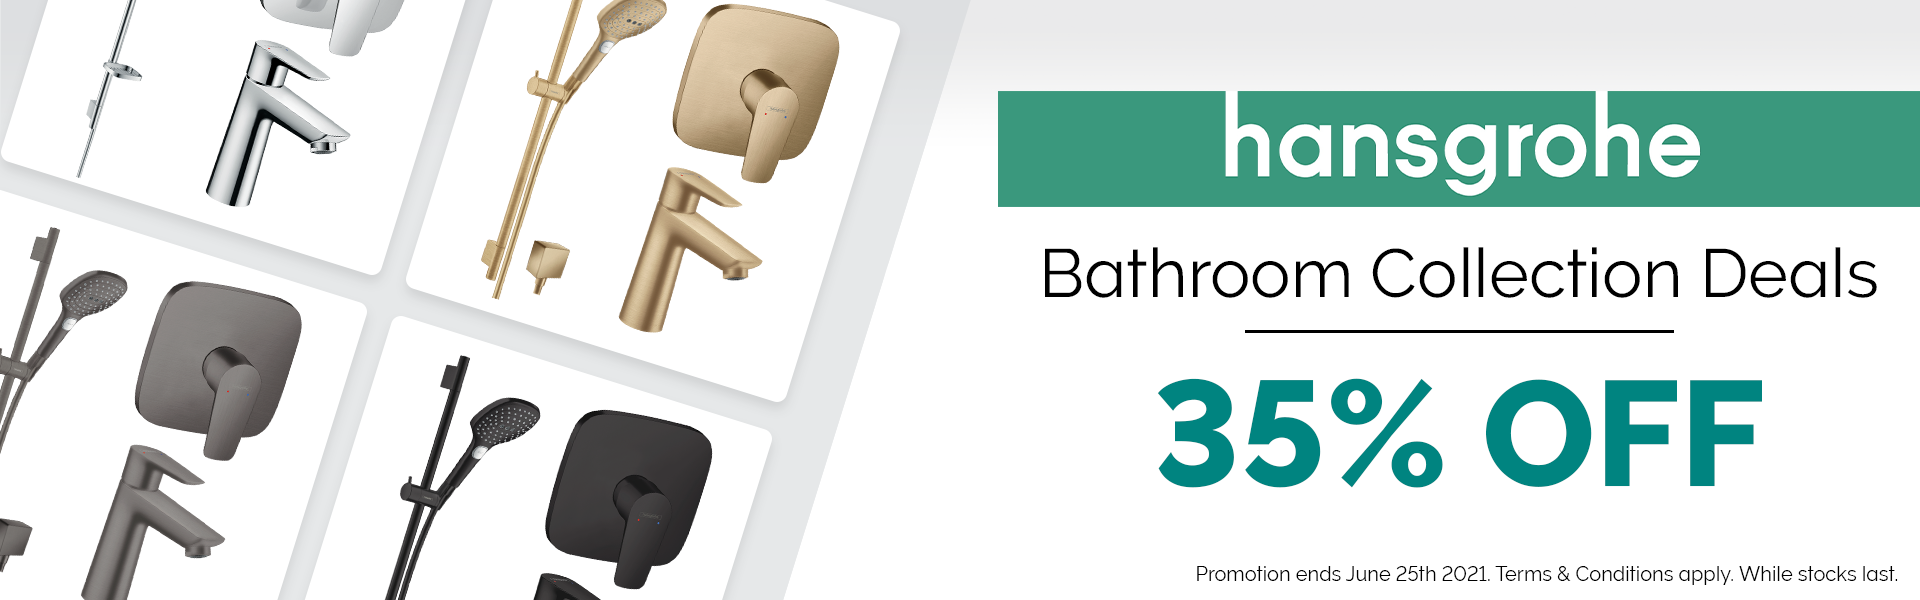 Hansgrohe Bathroom Collection Promotion